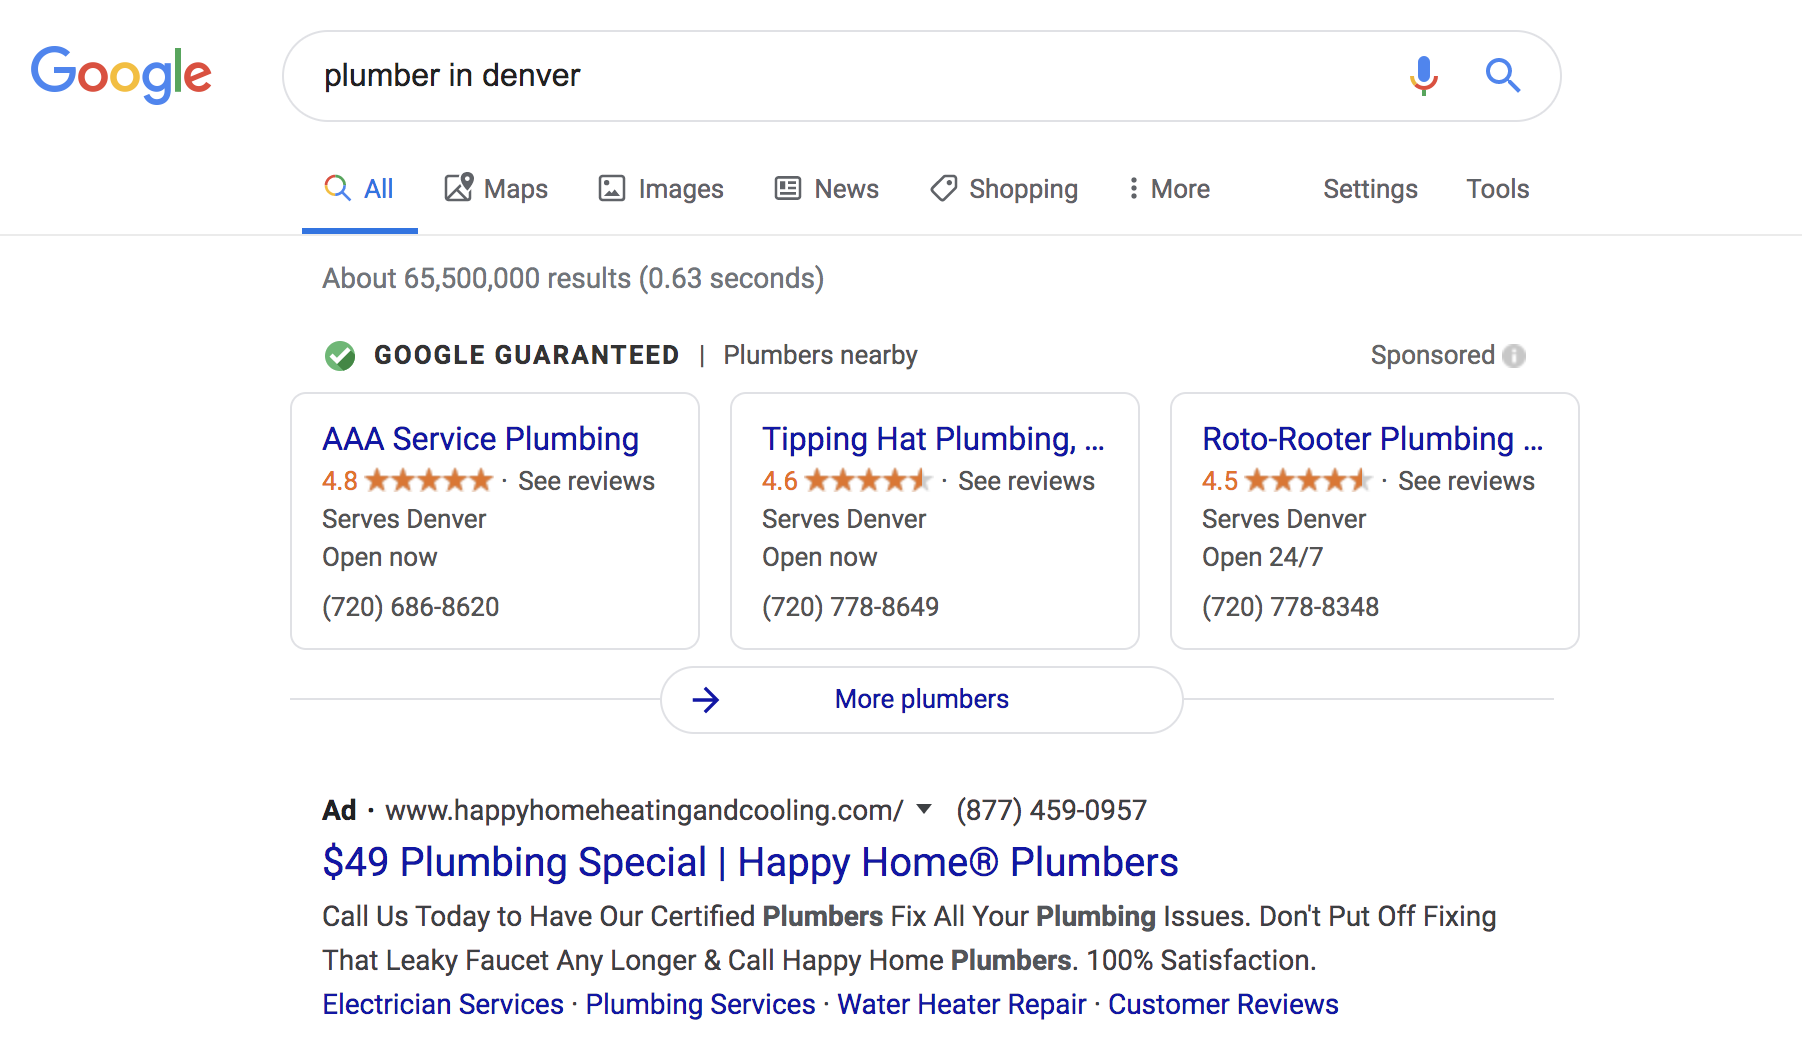 Local Services by Google, Plumber in Denver search Feb 2020